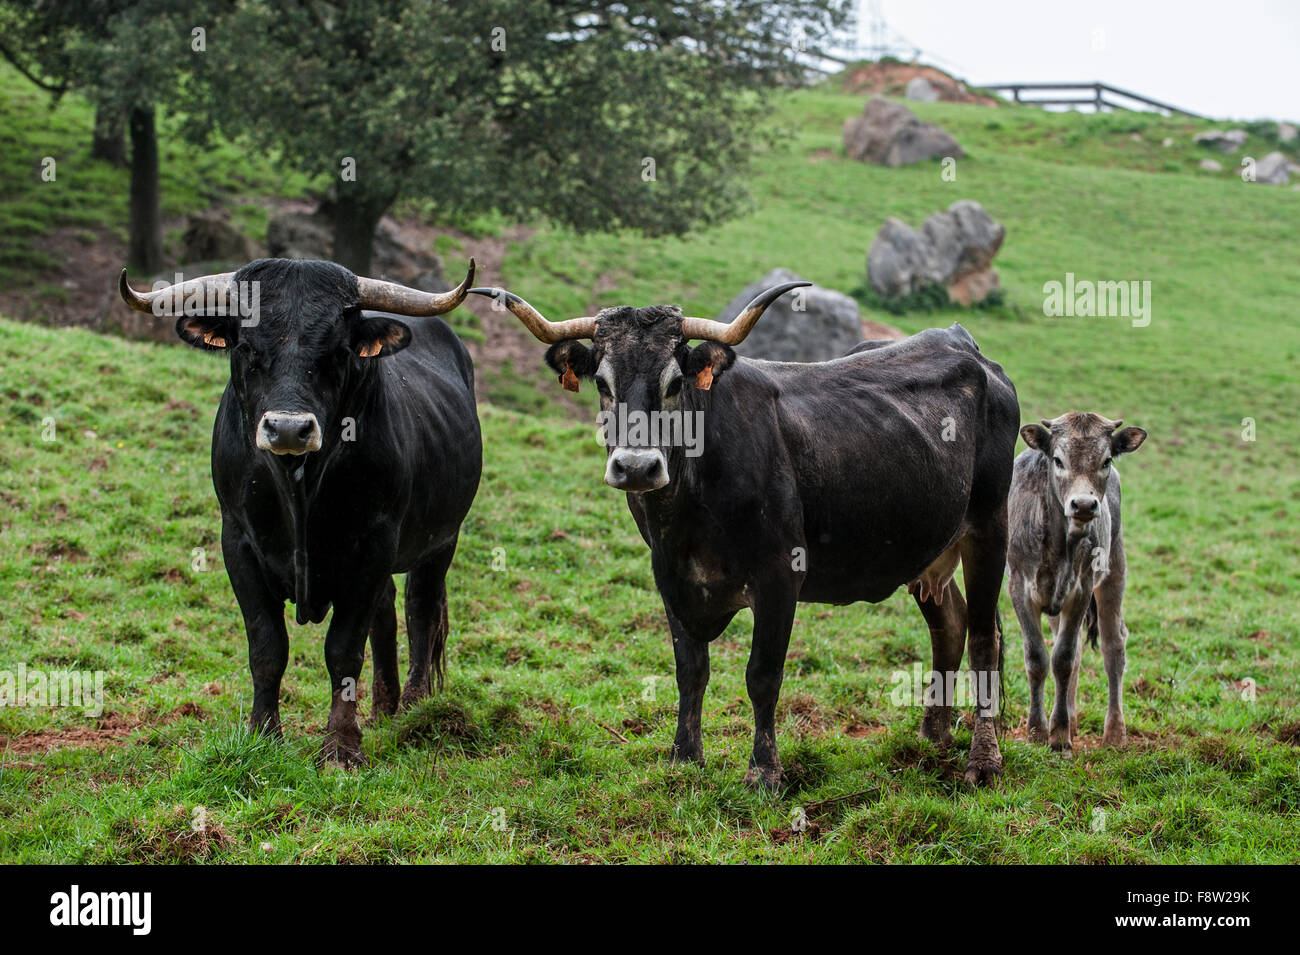 Tudanca bull, cow and calf, primitive breed of cattle from Cantabria, Spain - Stock Image